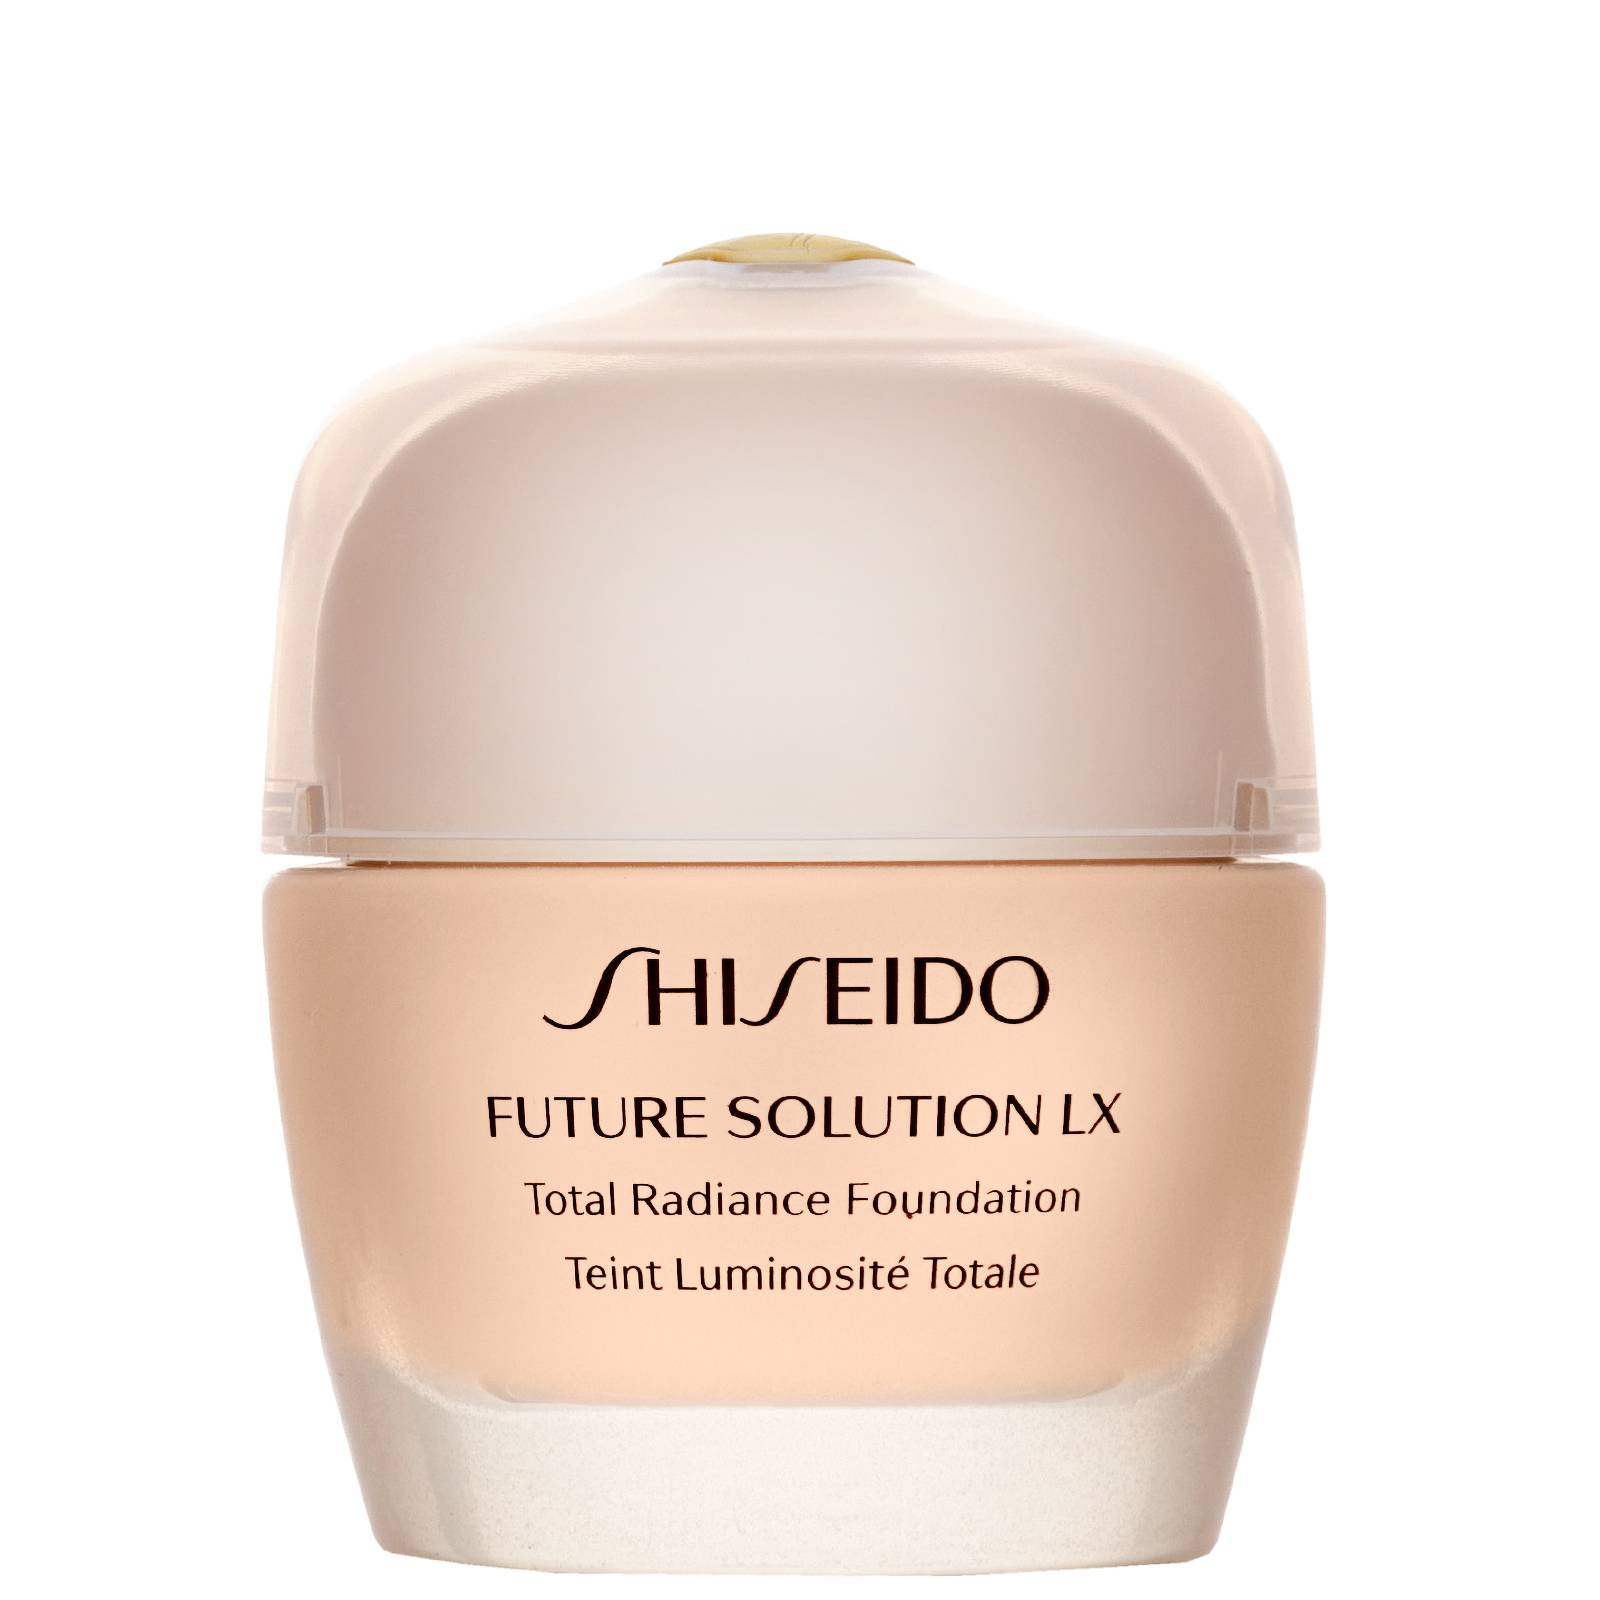 Shiseido Future Solution LX Total Radiance Foundation SPF15 3 Golden 30ml / 1 oz.